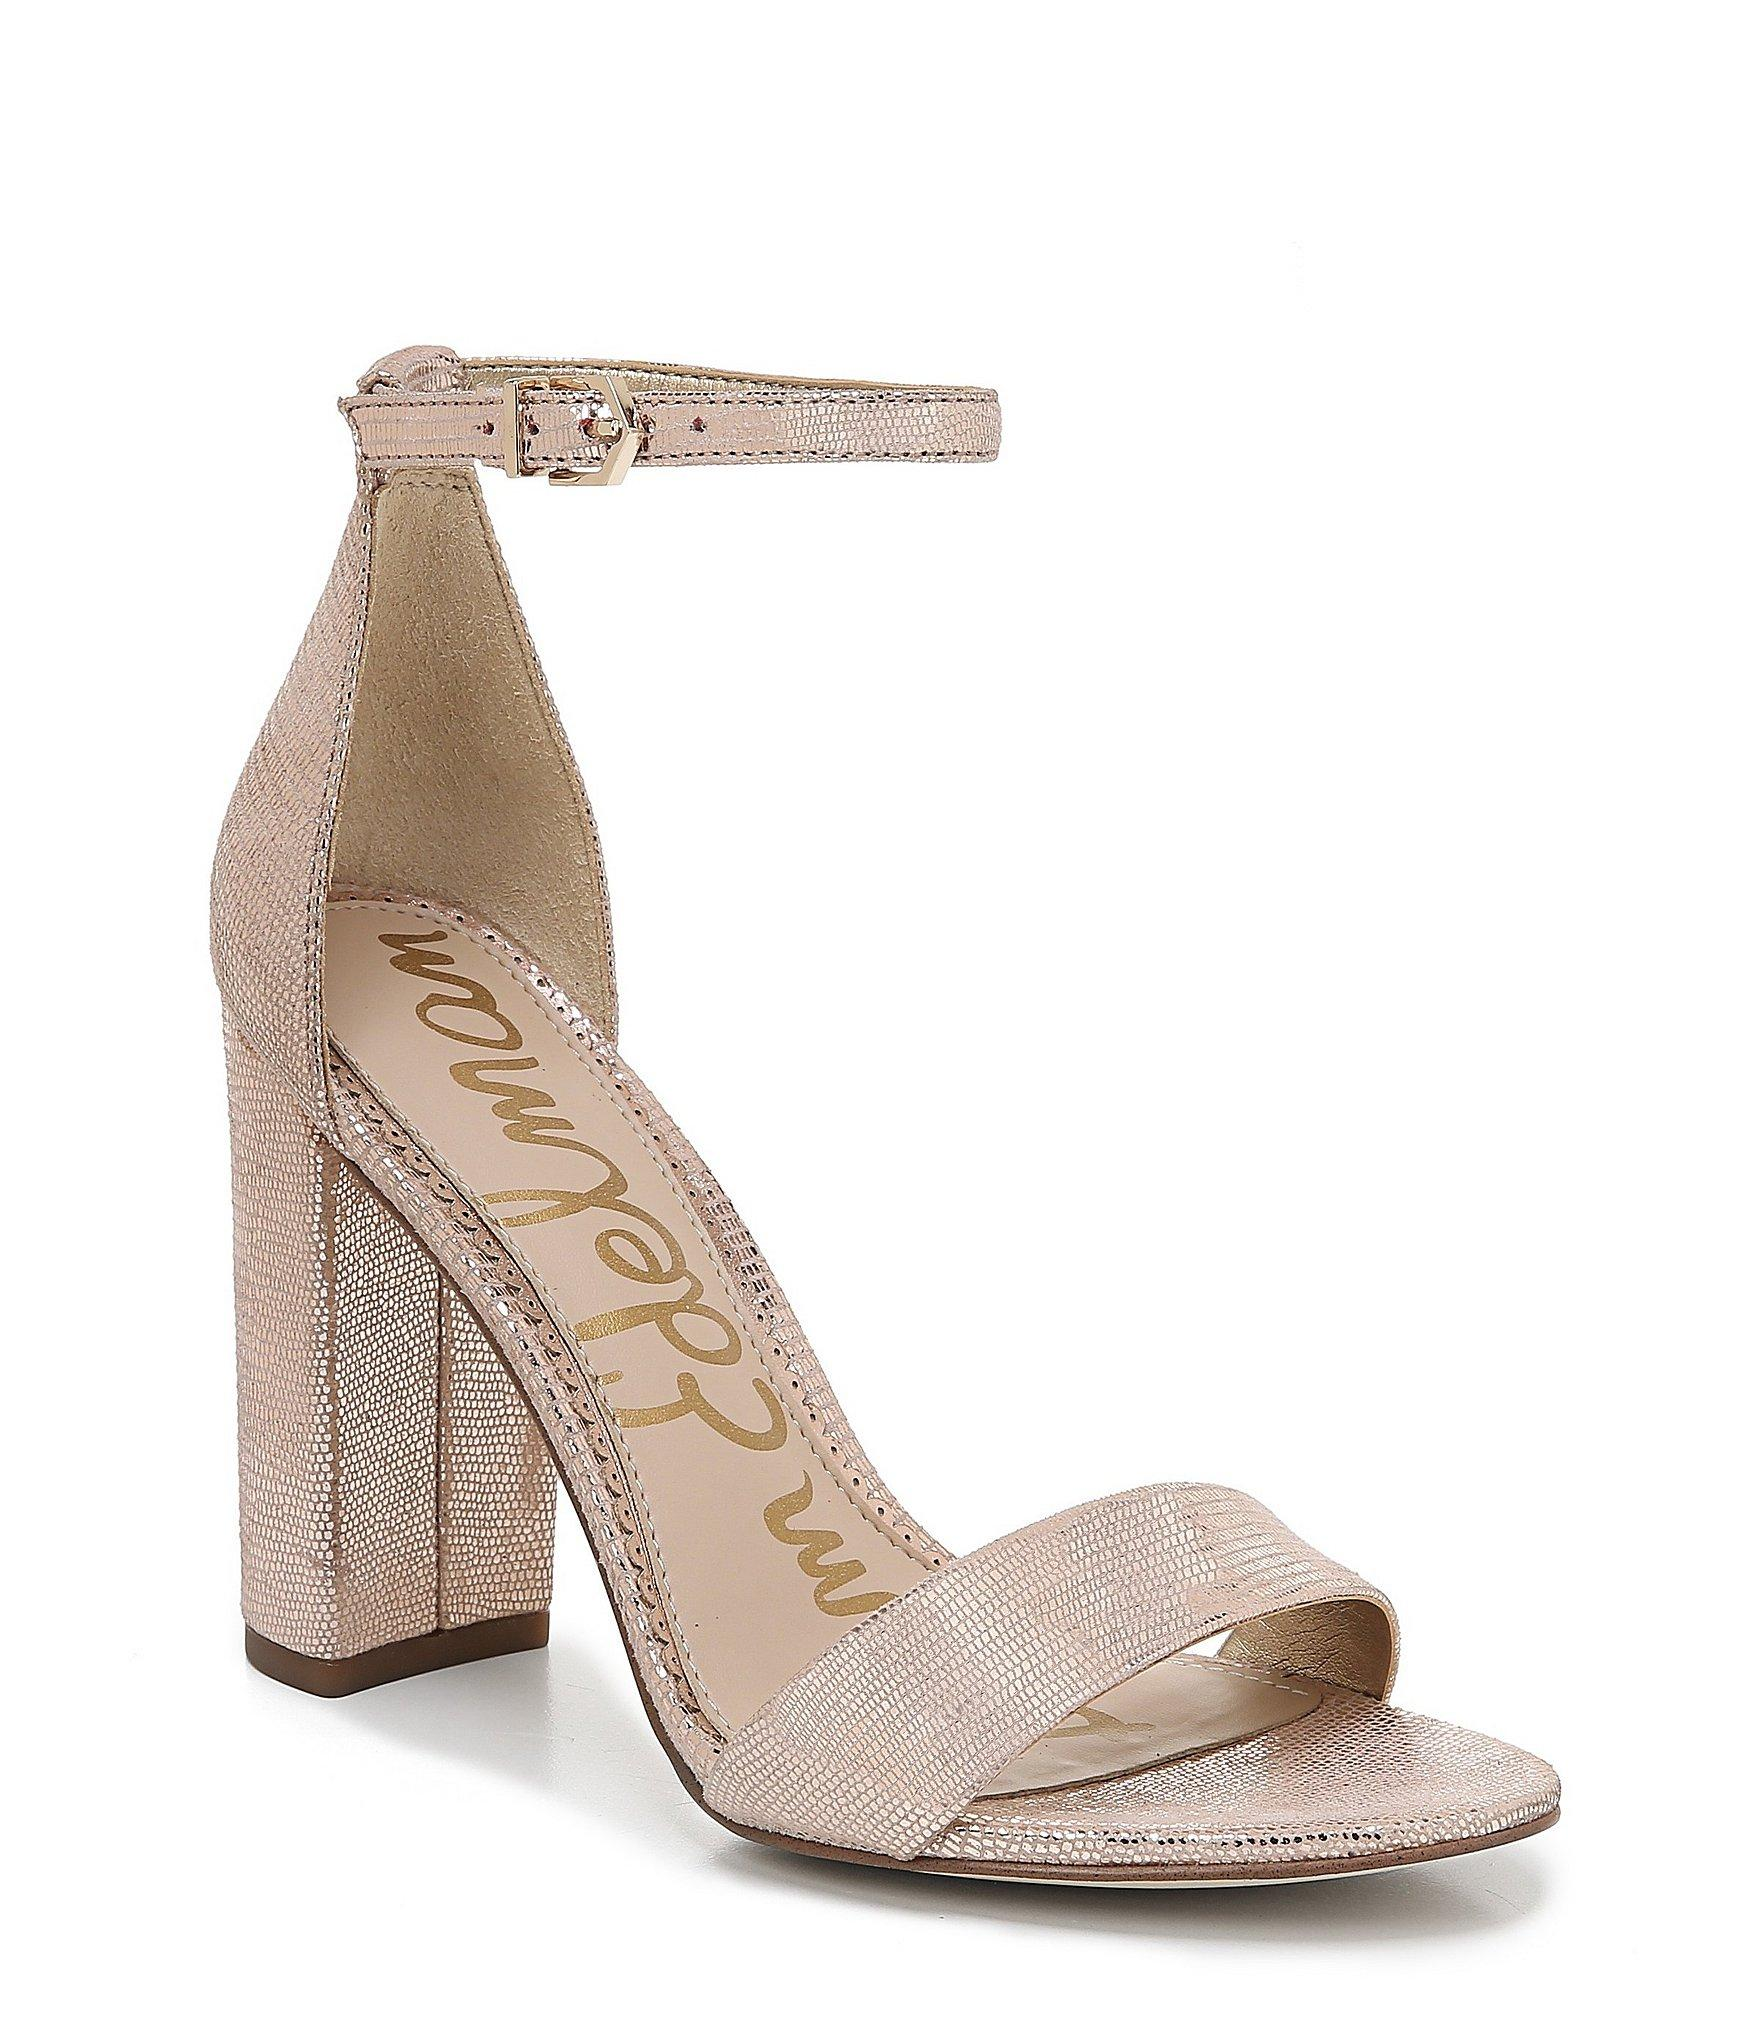 4e94c33e6cd Sam Edelman. Women s Yaro Metallic Leather Ankle Strap Block Heel Dress  Sandals